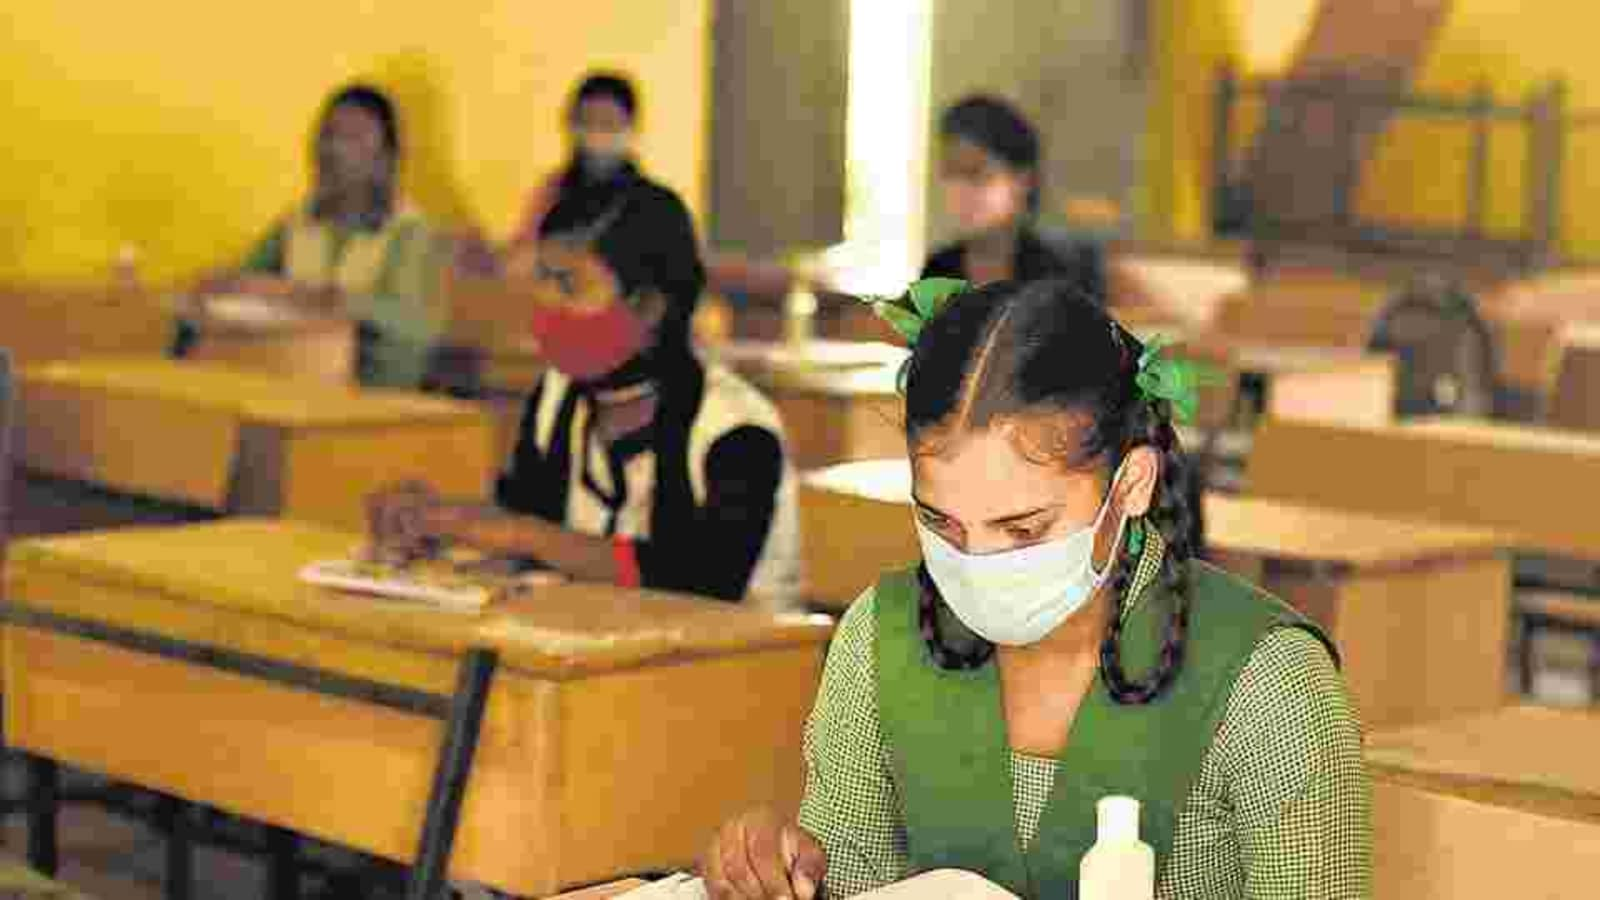 UP schools to reopen for students of Classes 6 to 8 from today. 10 points |  Hindustan Times